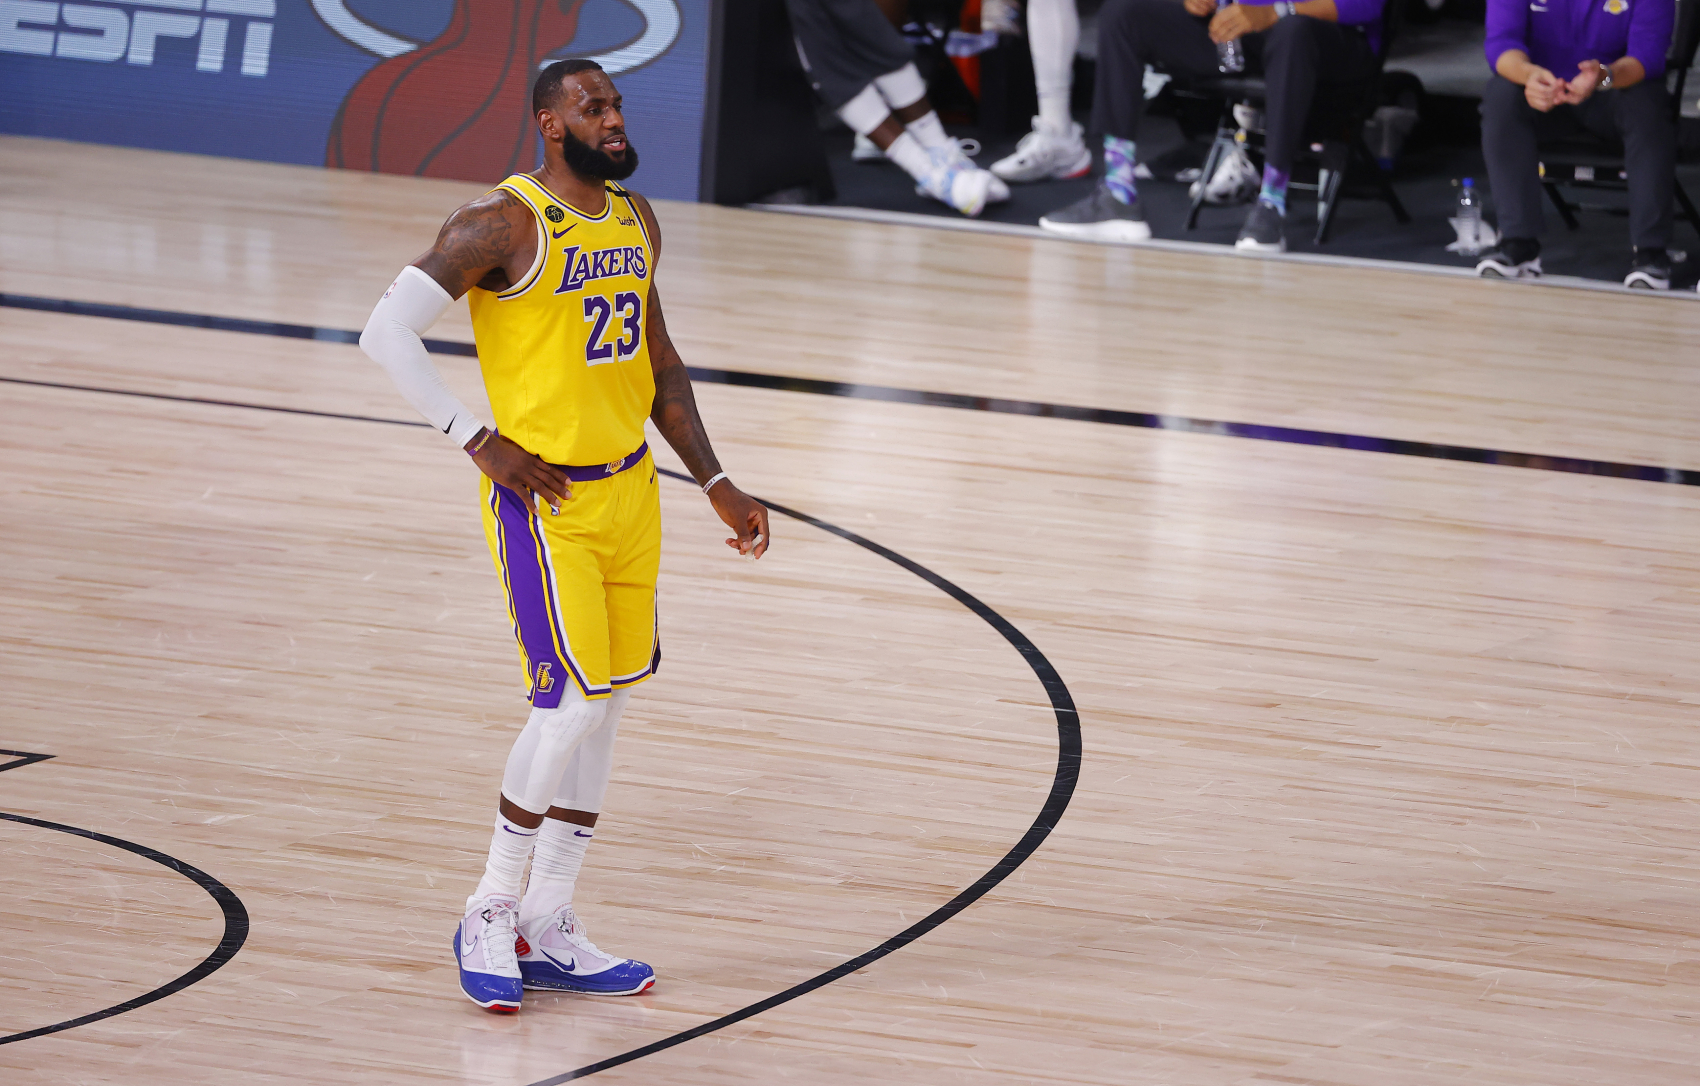 LeBron James has been dominant in the Western Conference with the LA Lakers. However, his run has a Denver Nuggets star fed up.